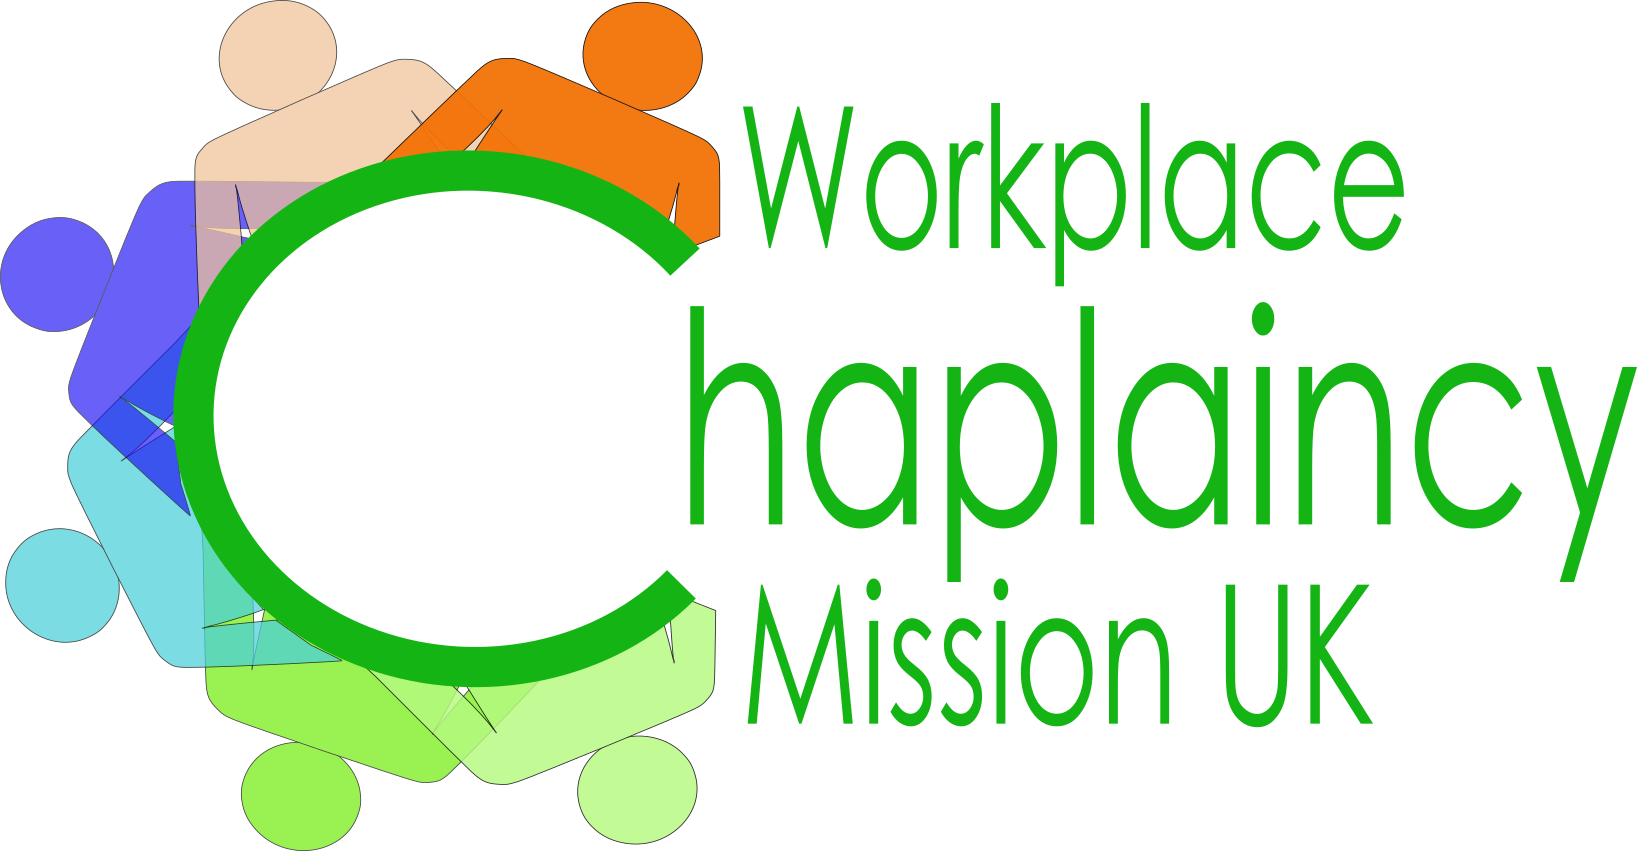 Workplace chaplaincy mission uk. Missions clipart church officer